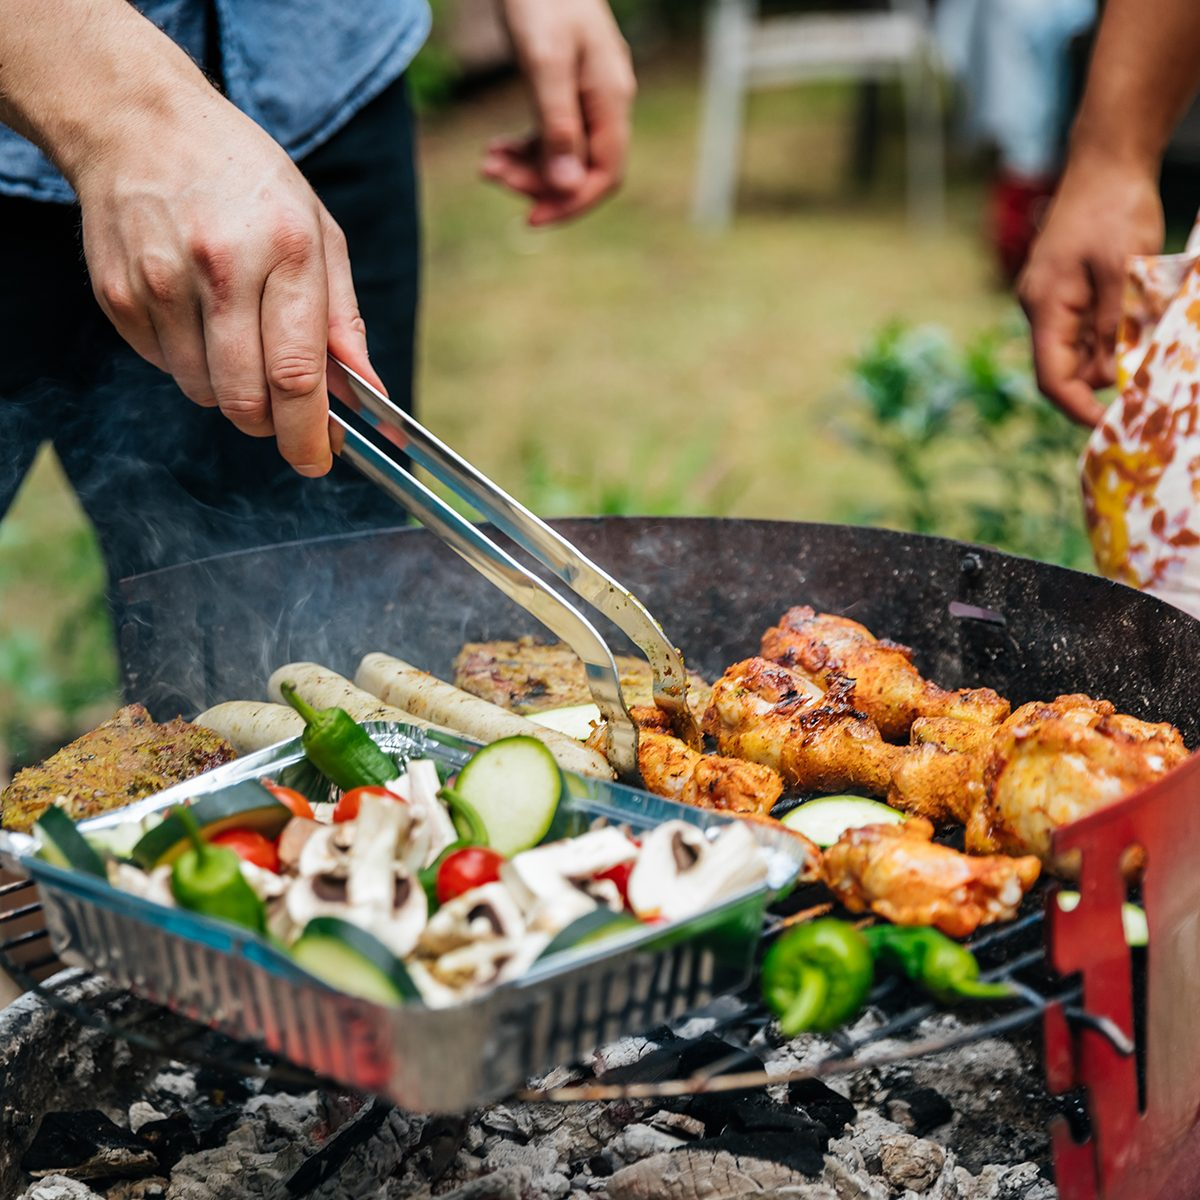 A close up of aman cooking different foods on a barbecue.